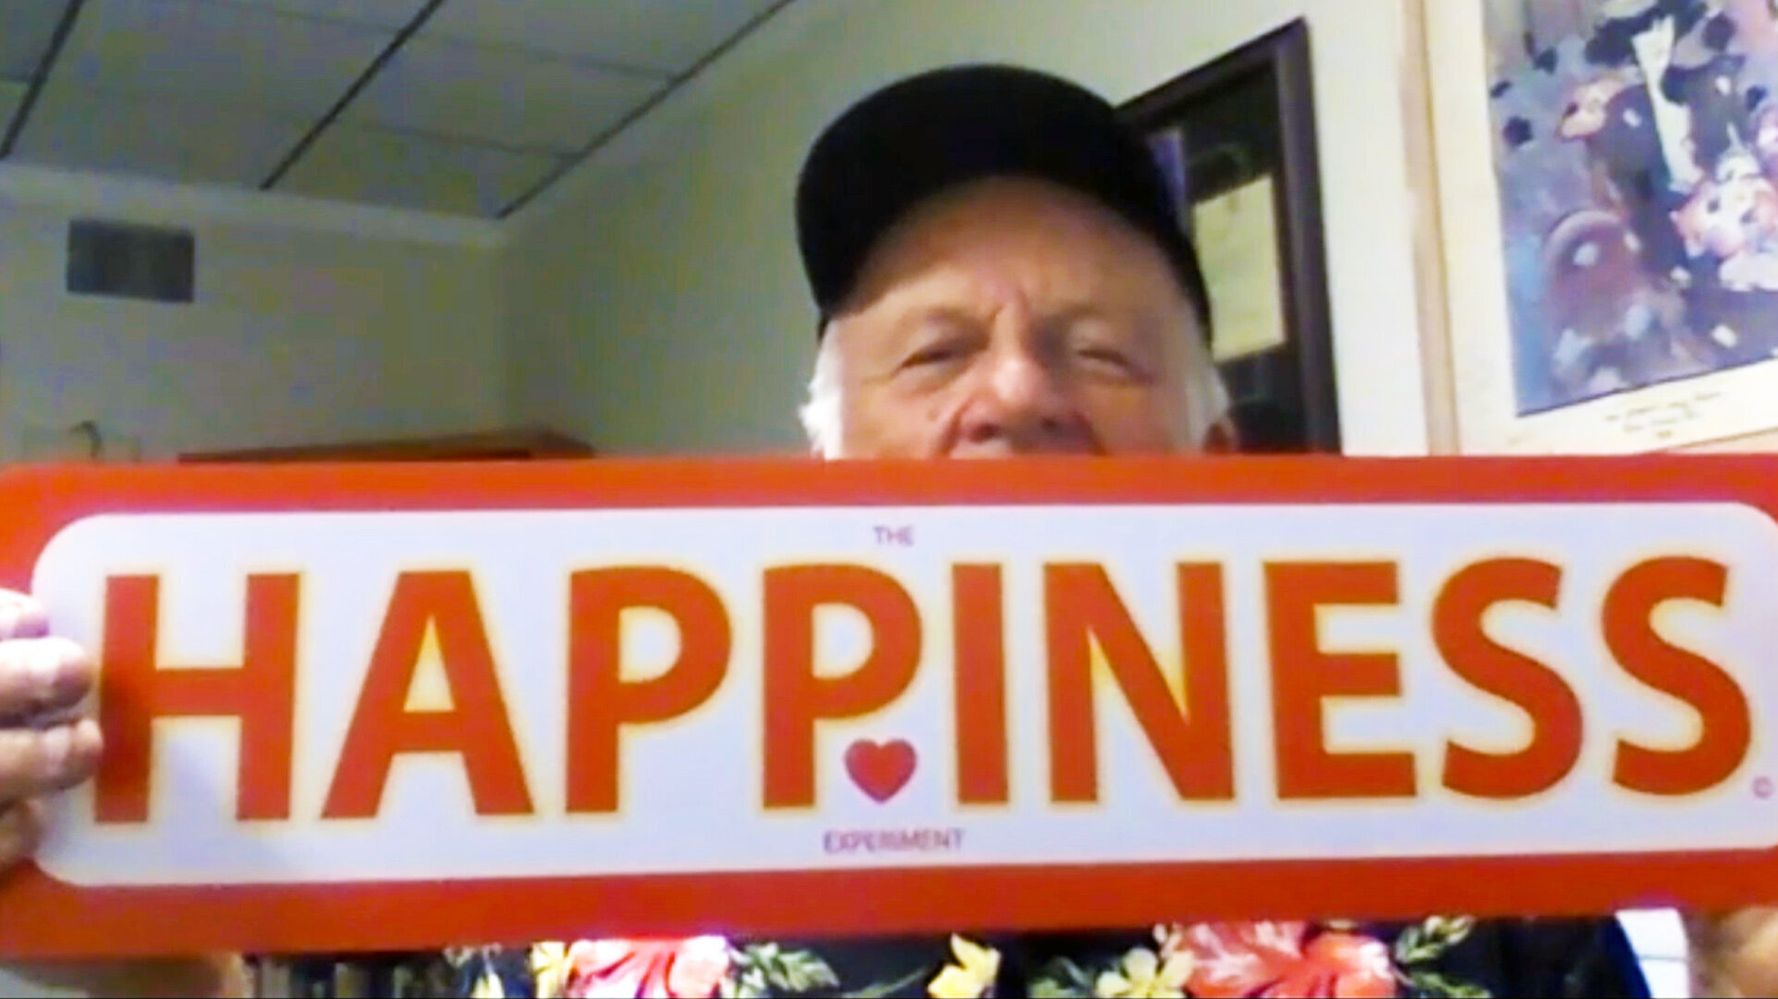 A Minute Of Kindness: This Man Covered His City With Happiness Signs